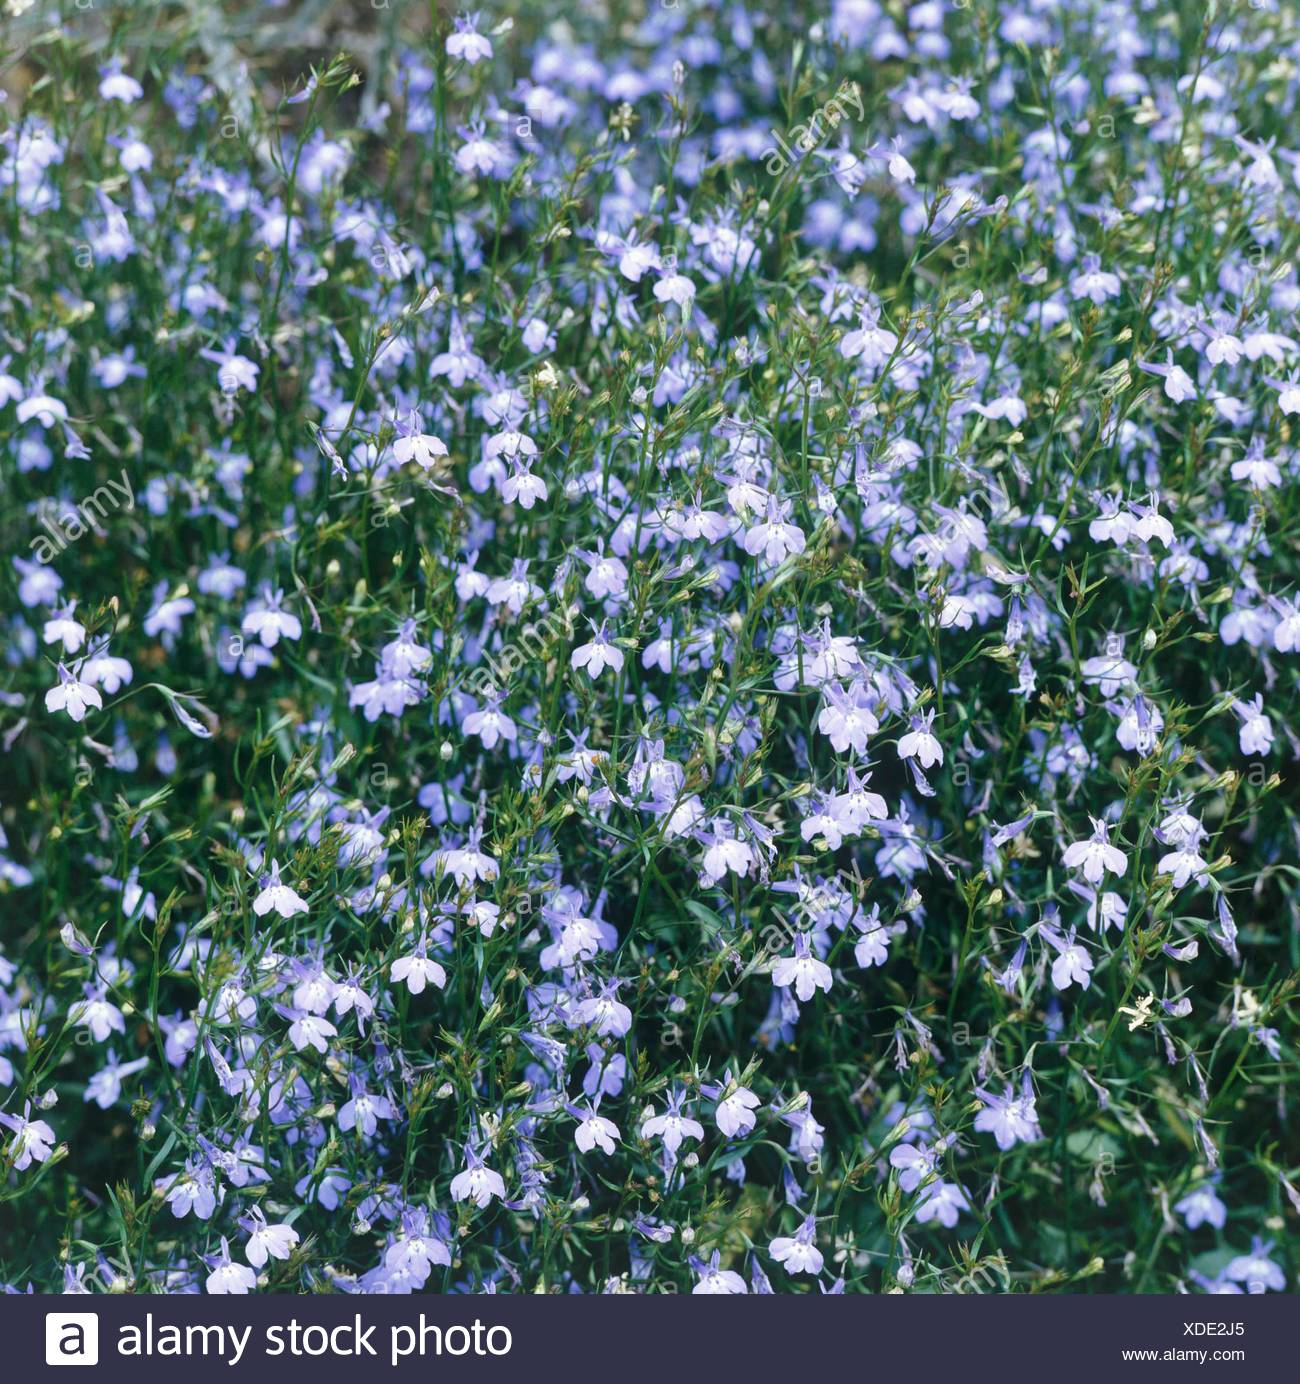 Lobelia Richardii Photos & Lobelia Richardii Images - Alamy